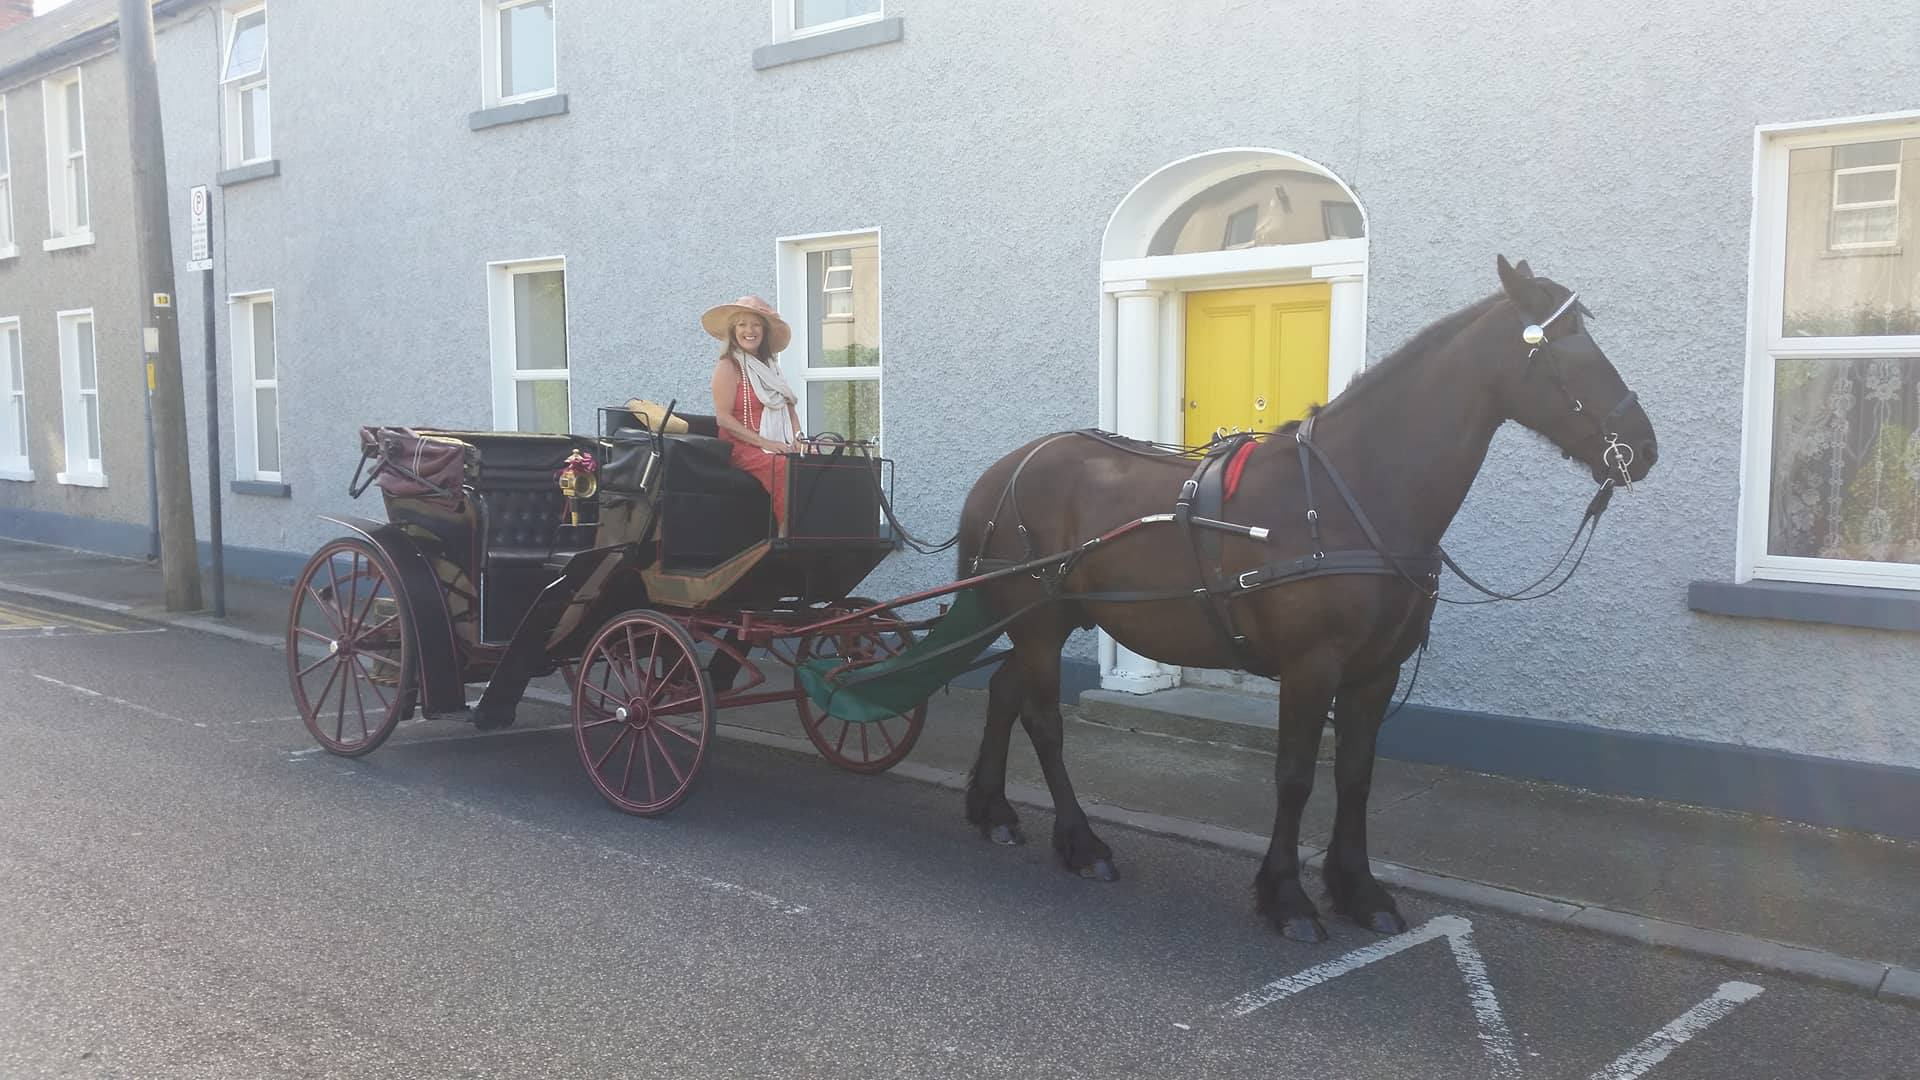 Horse & Carriage Fingal